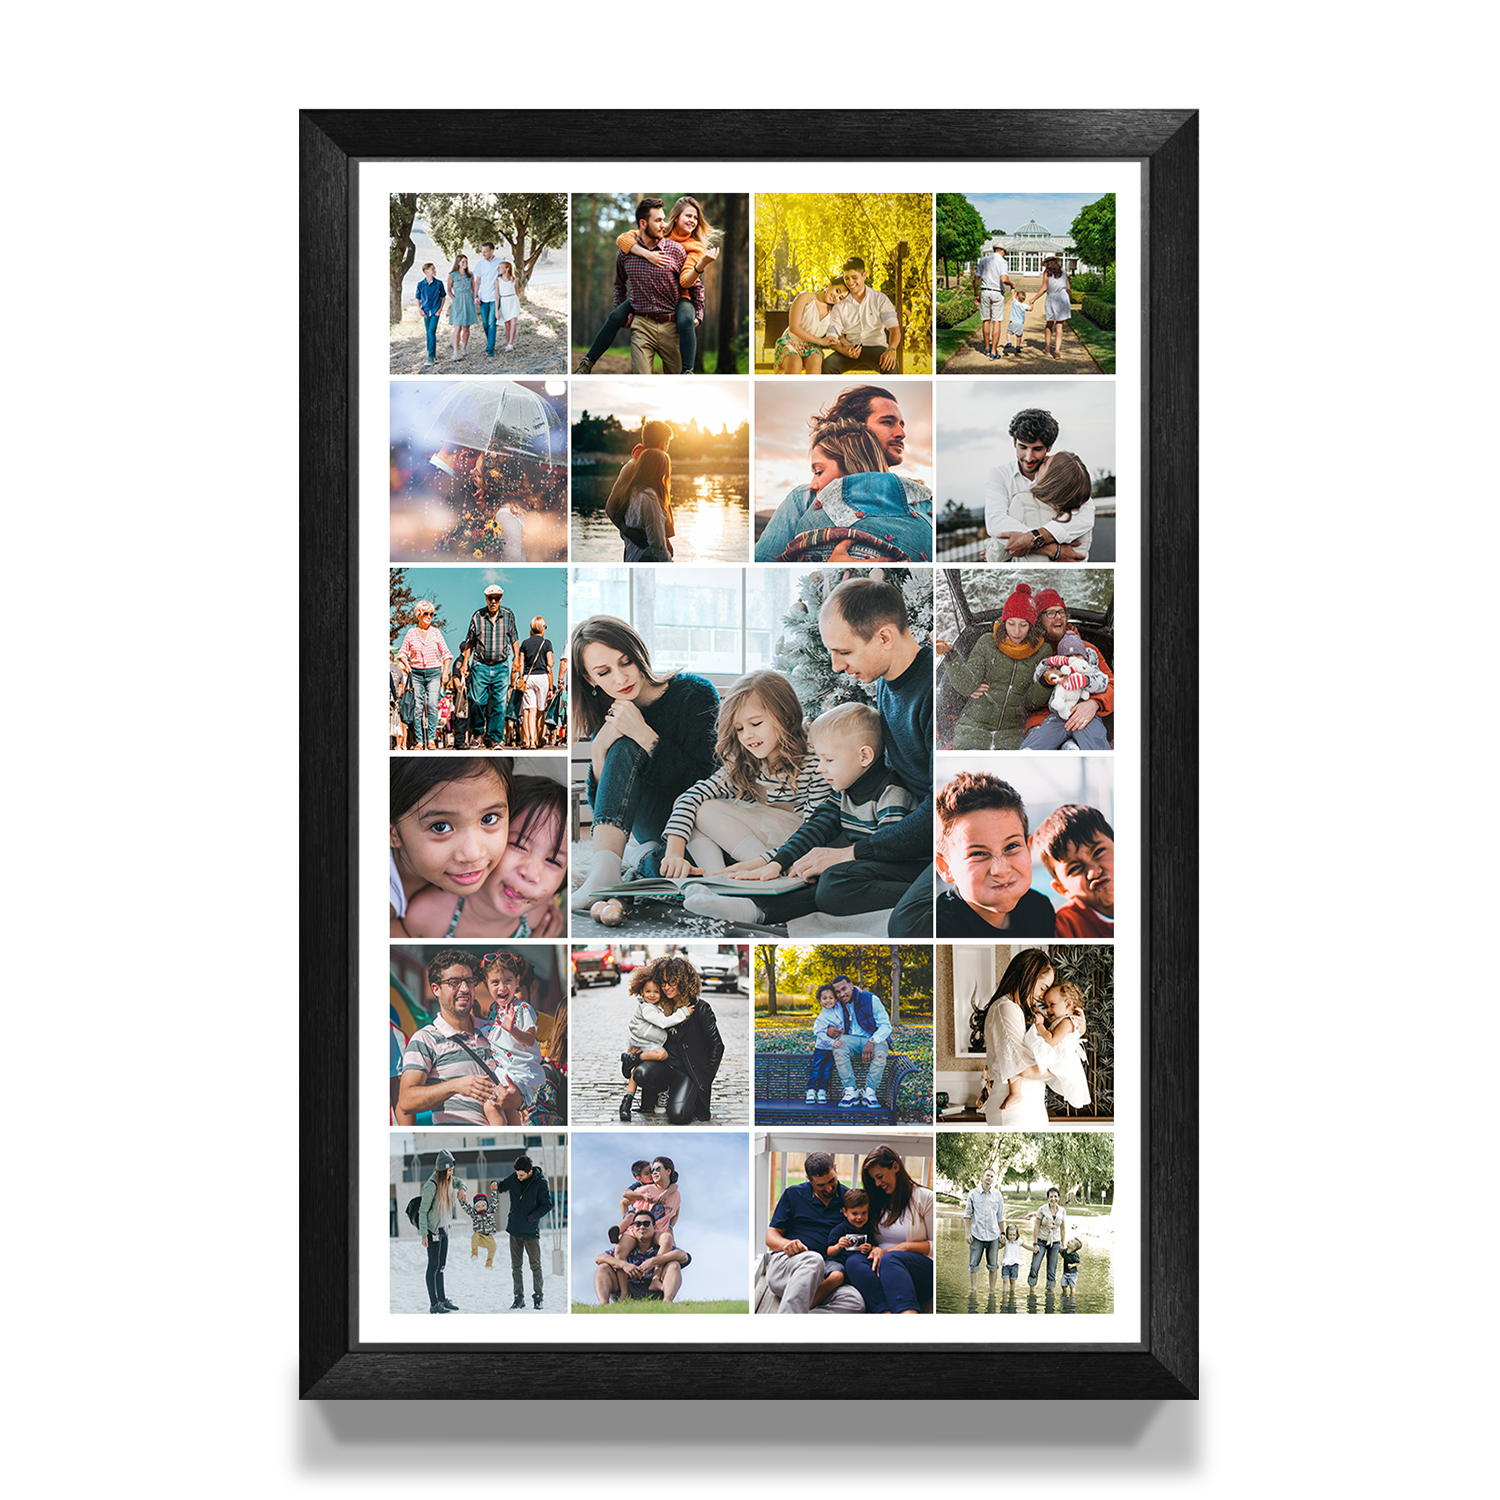 minimal frame 4*6 (empty frames) without print front glass hanging or stand optional